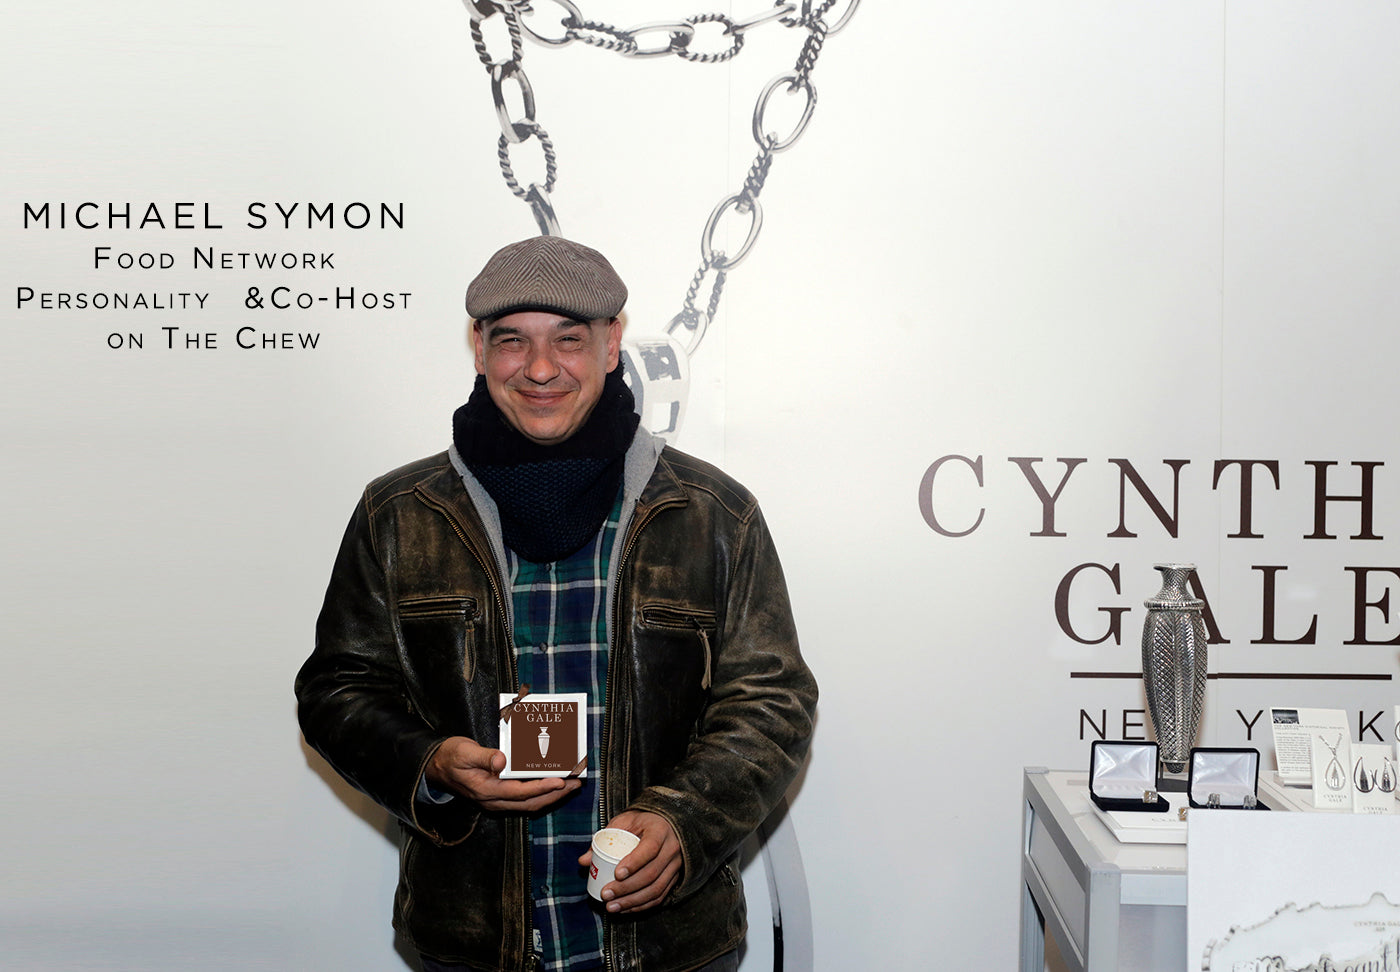 Michael Symon fashion style